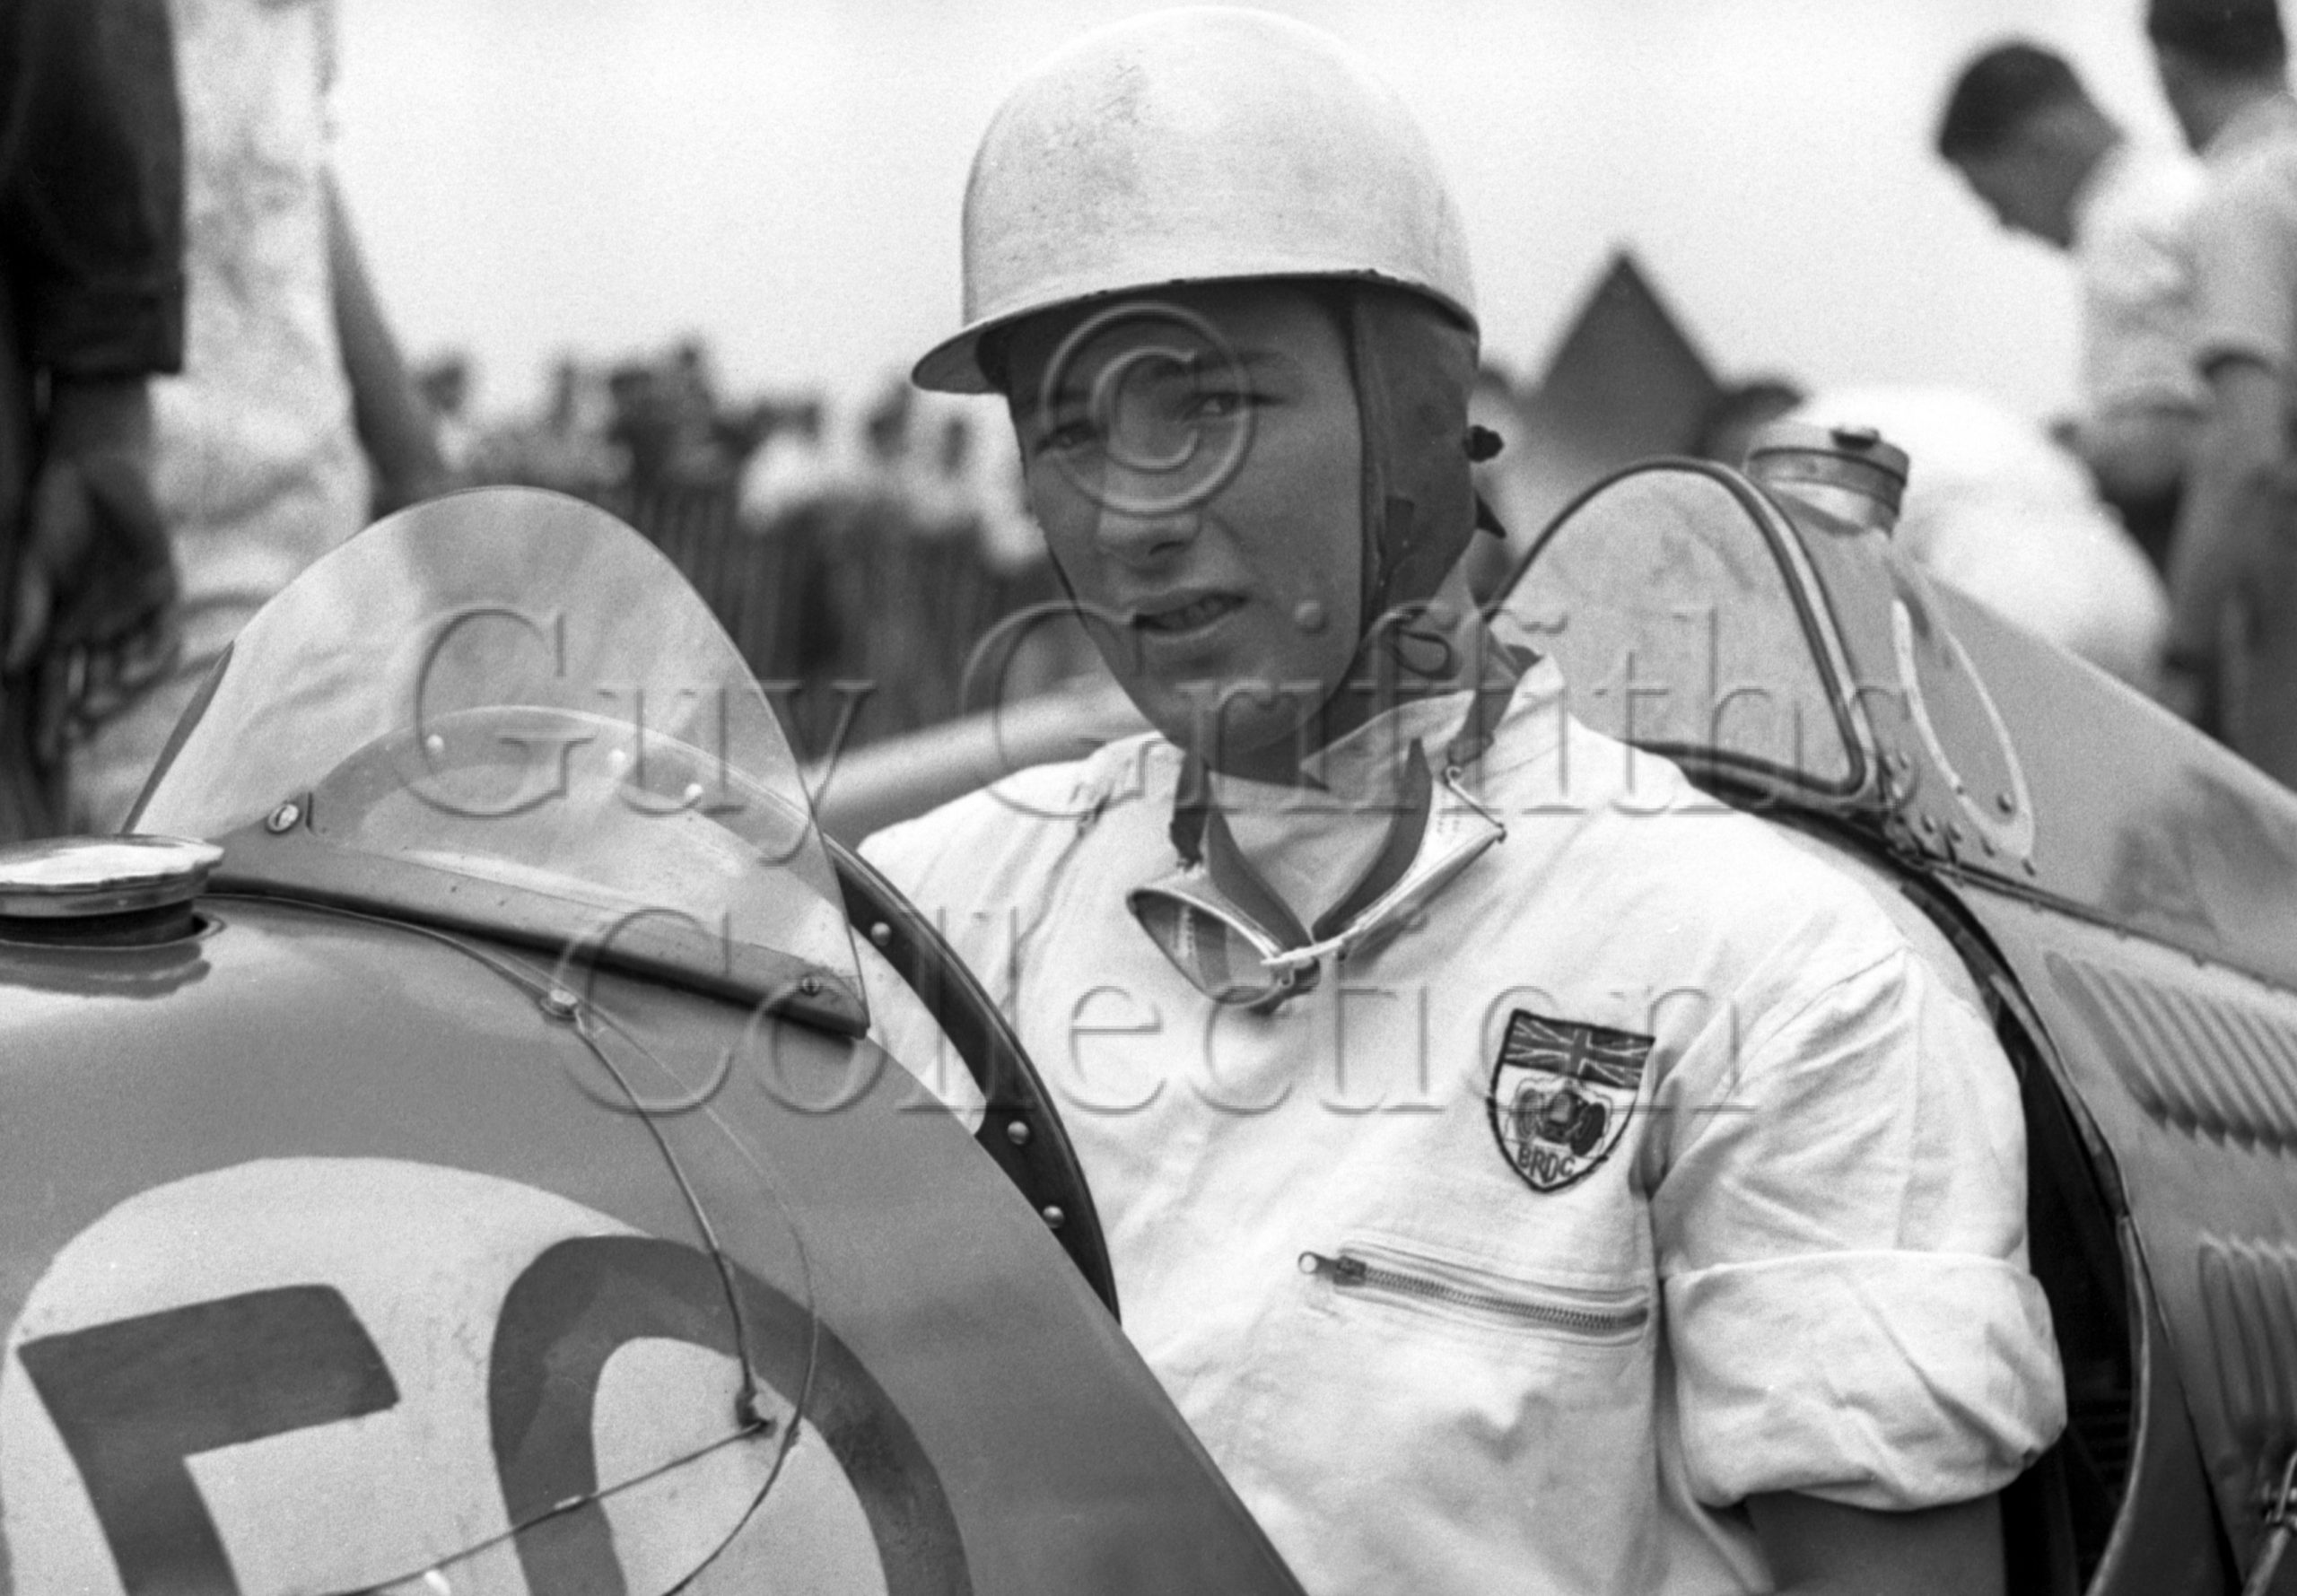 34-916–S-Moss–Cooper-Jap–Brands-Hatch–07-08-1950.jpg - Guy Griffiths Collection